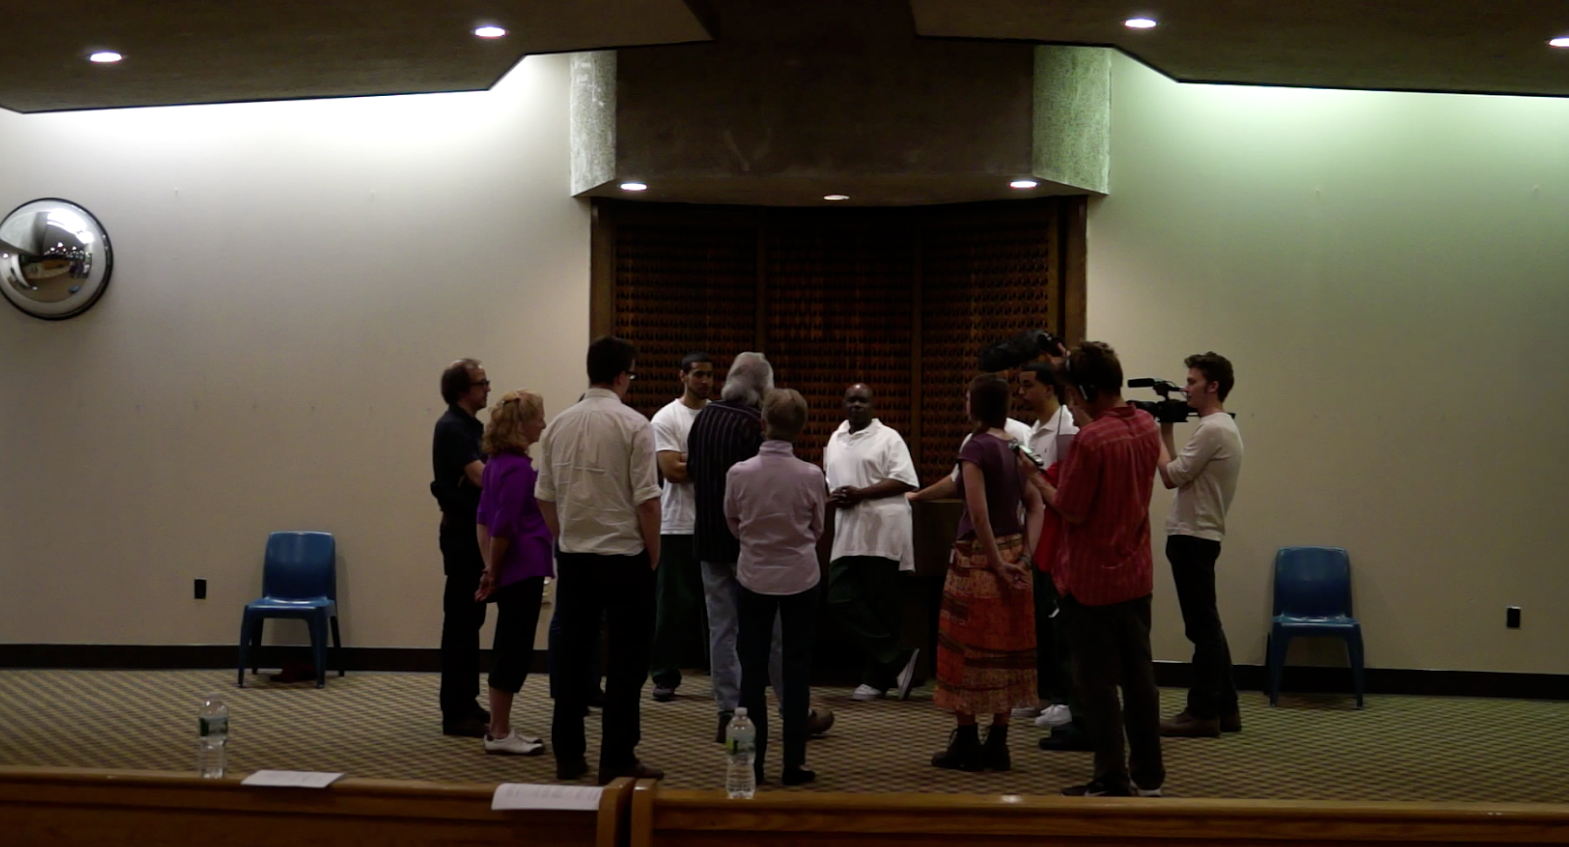 The group meets after the rehearsal in the chapel.